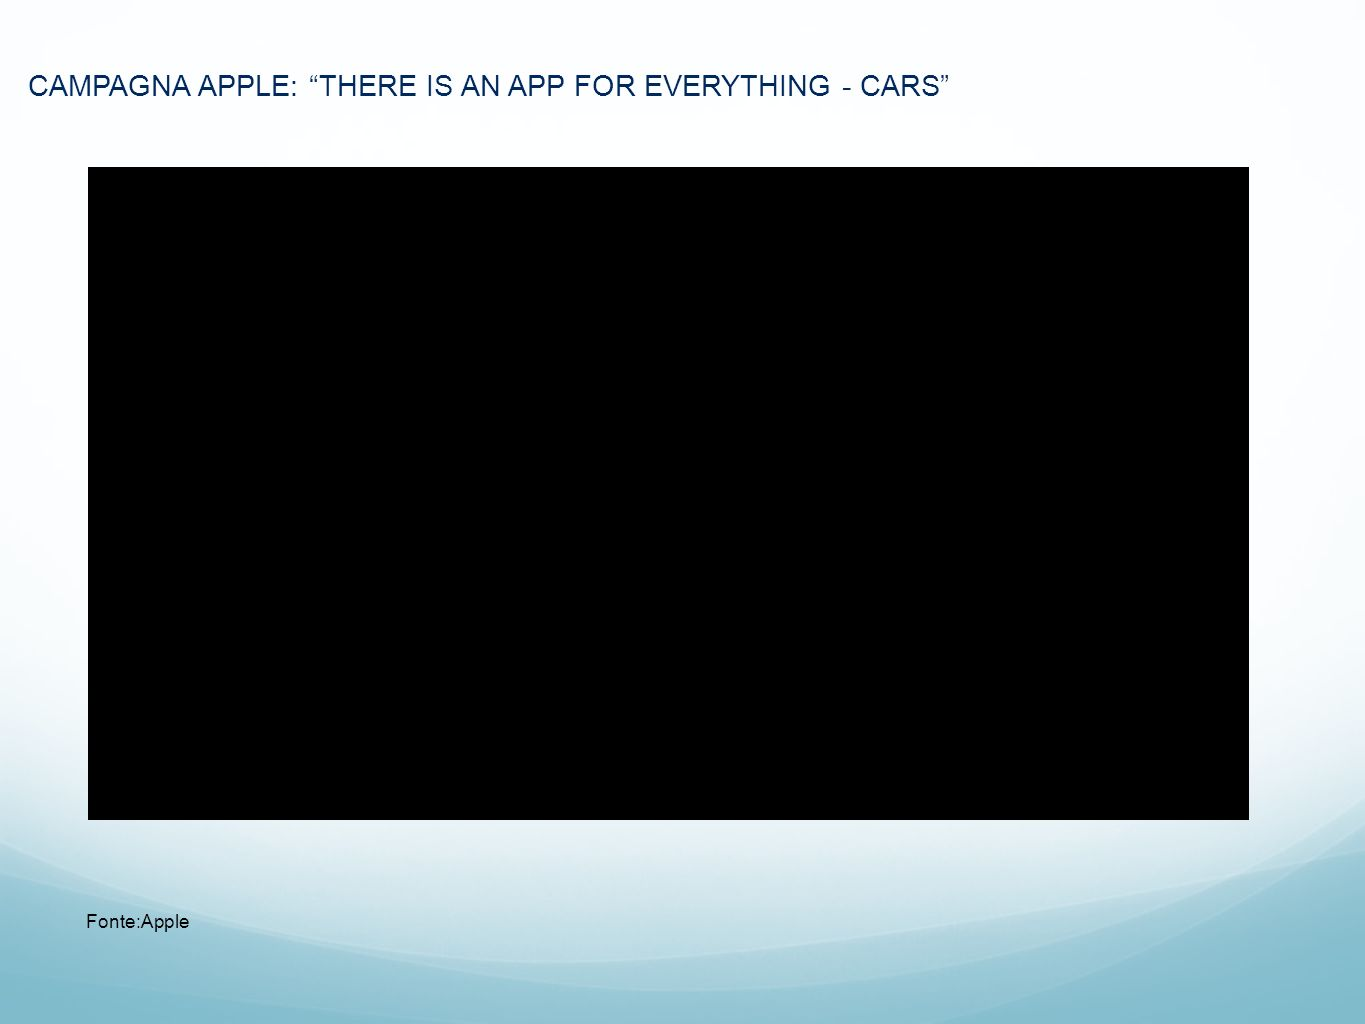 CAMPAGNA APPLE: THERE IS AN APP FOR EVERYTHING - CARS